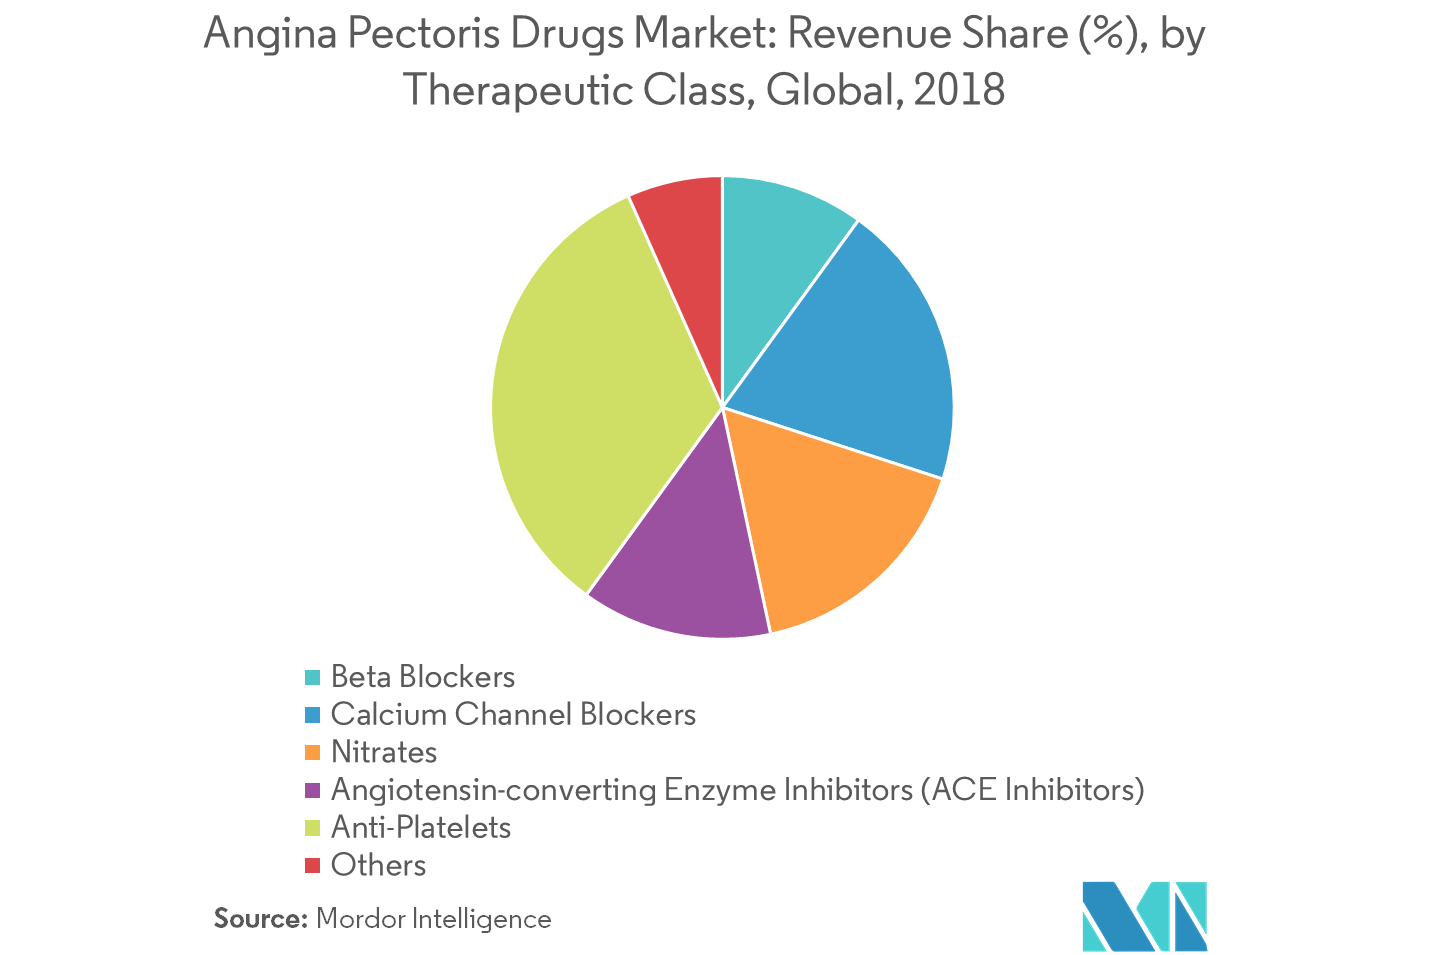 Angina Pectoris Drugs Market-2